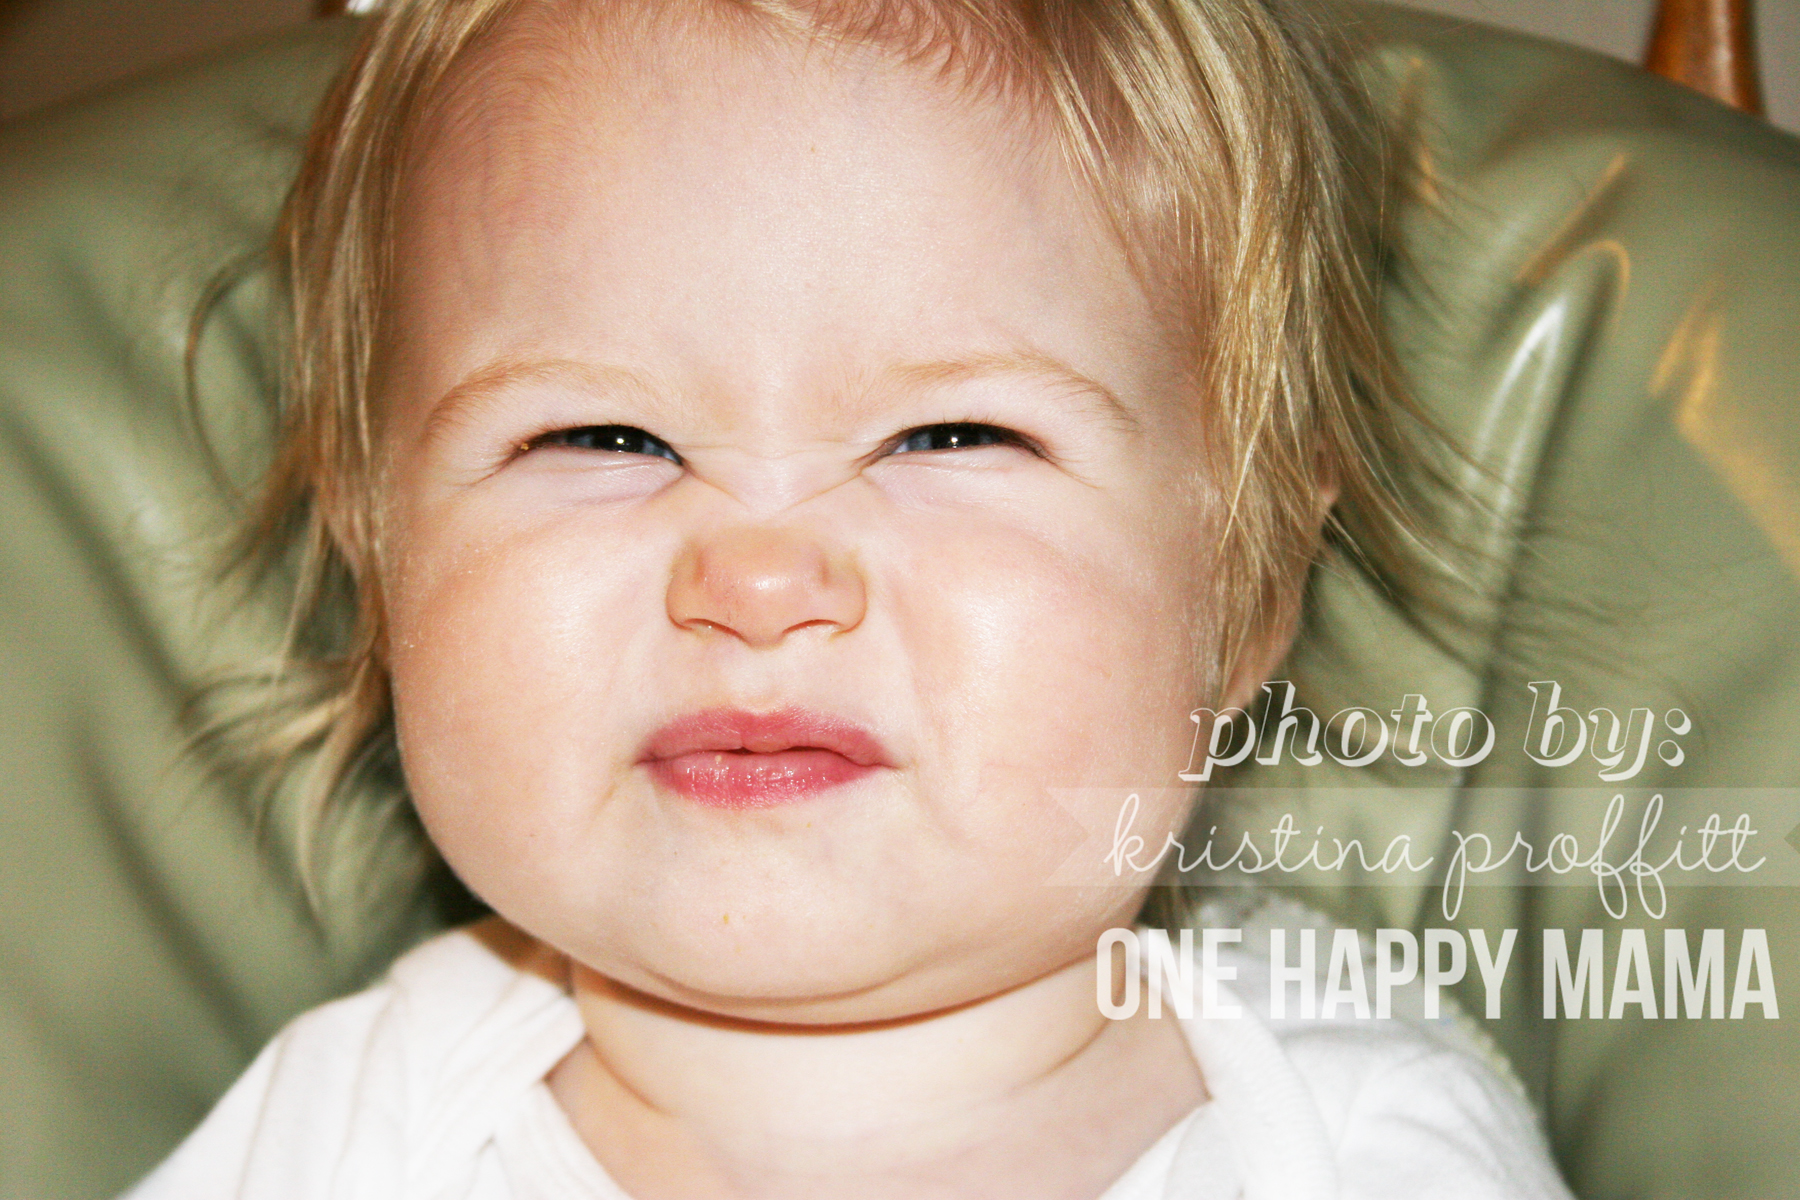 Squishy Face : The squishy face - One Happy Mama